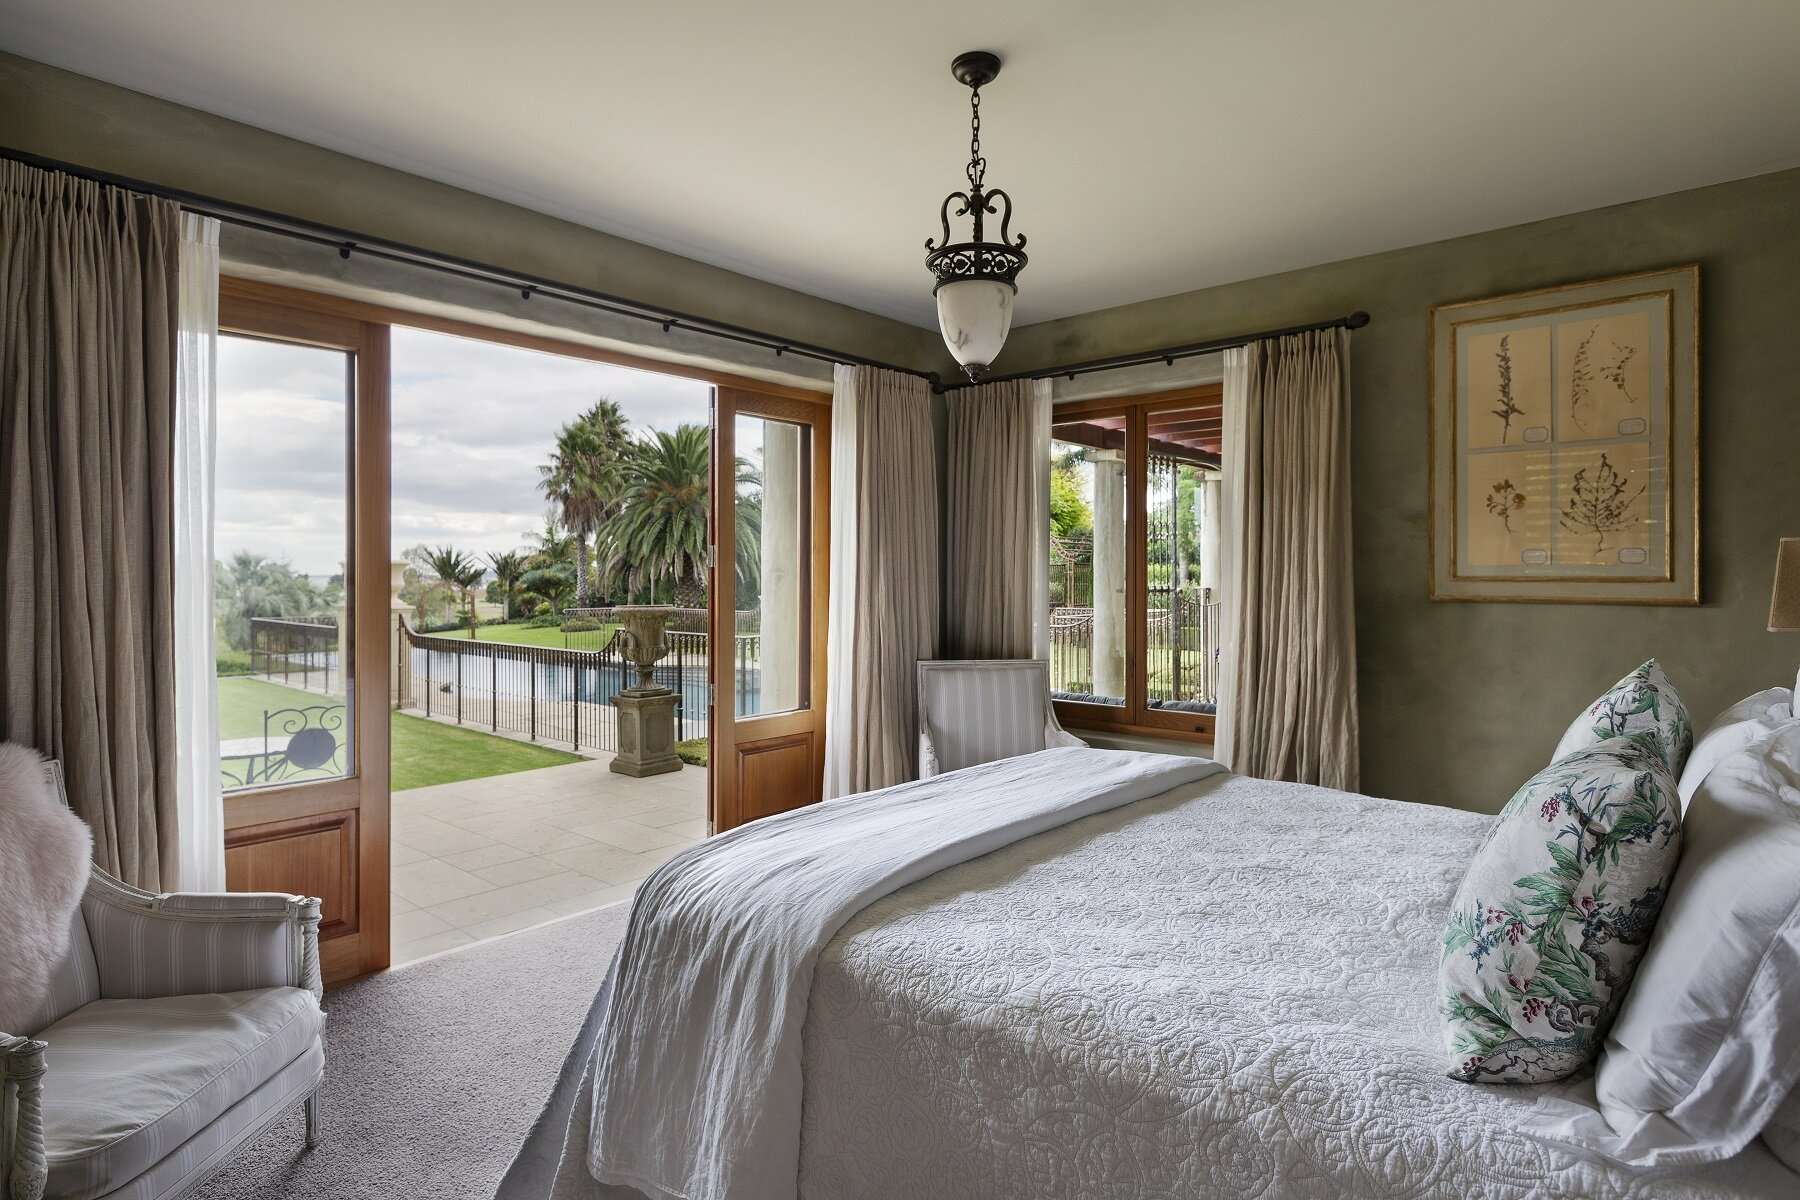 bedroom at Ataahua Lodge with open doors leading out to the garden and pool